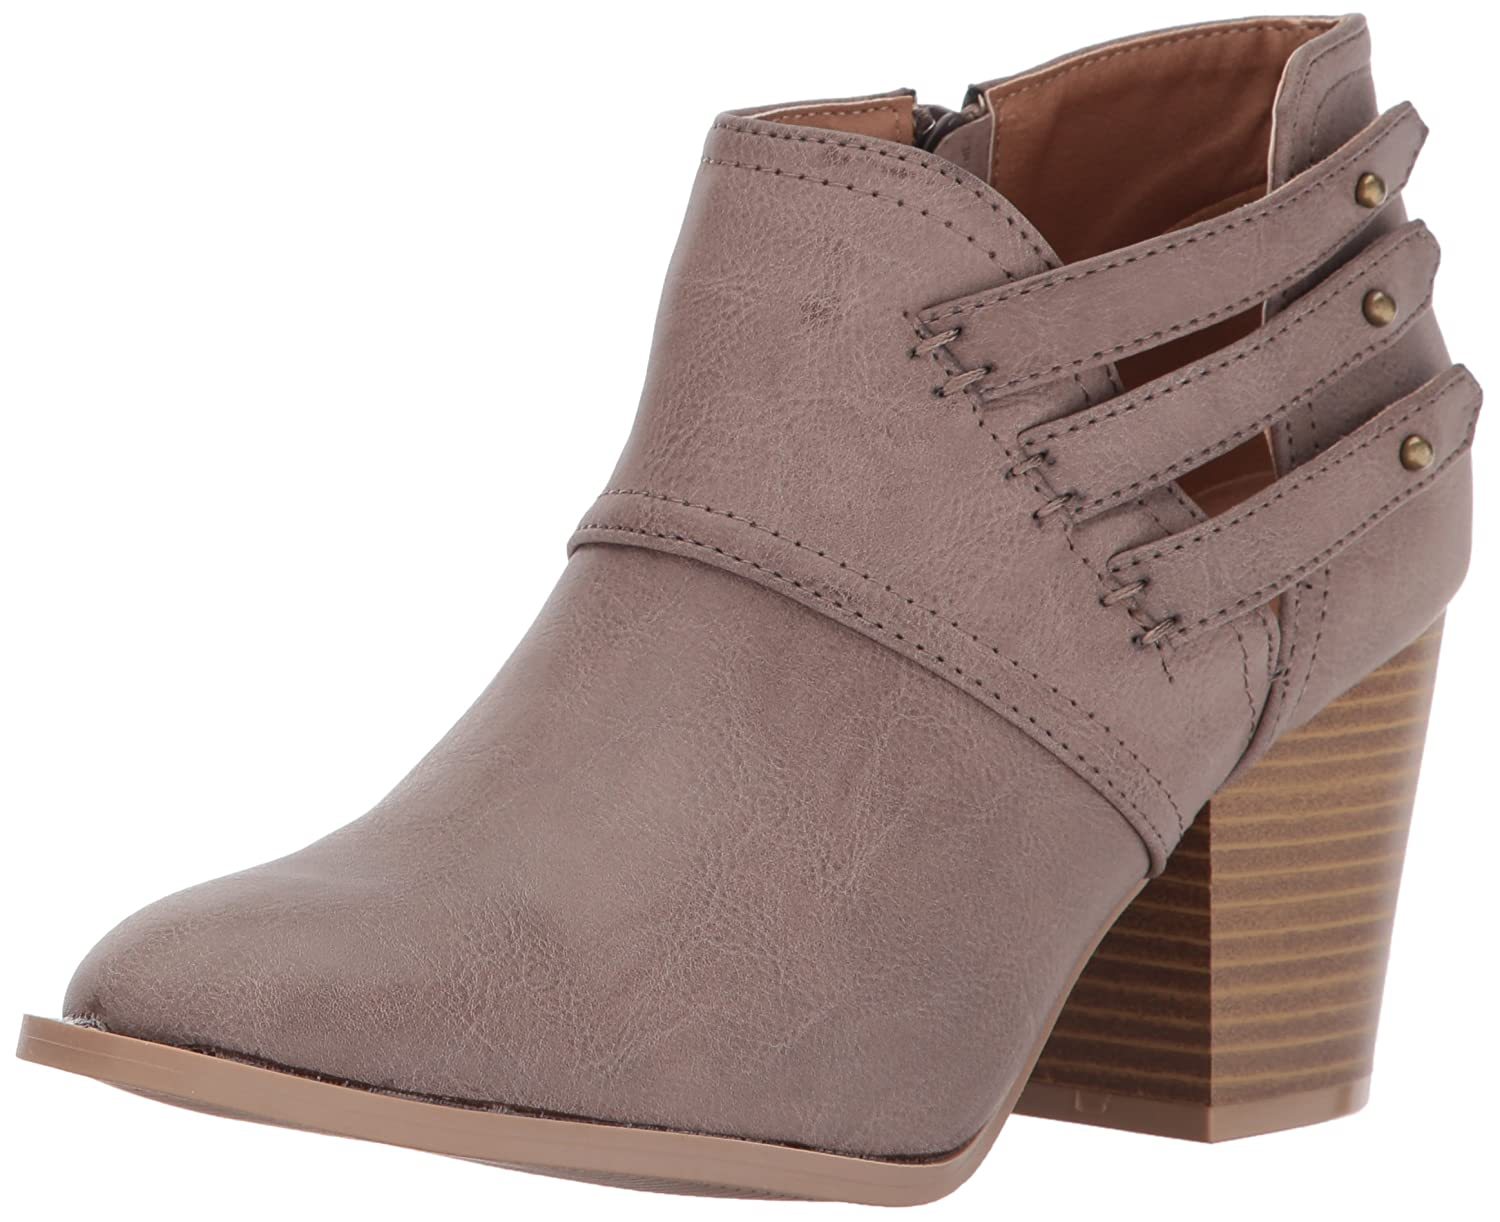 Qupid Women's Prenton-10 Ankle Bootie B06Y5ZXCW7 10 B(M) US|Taupe Burnish Polyurethane